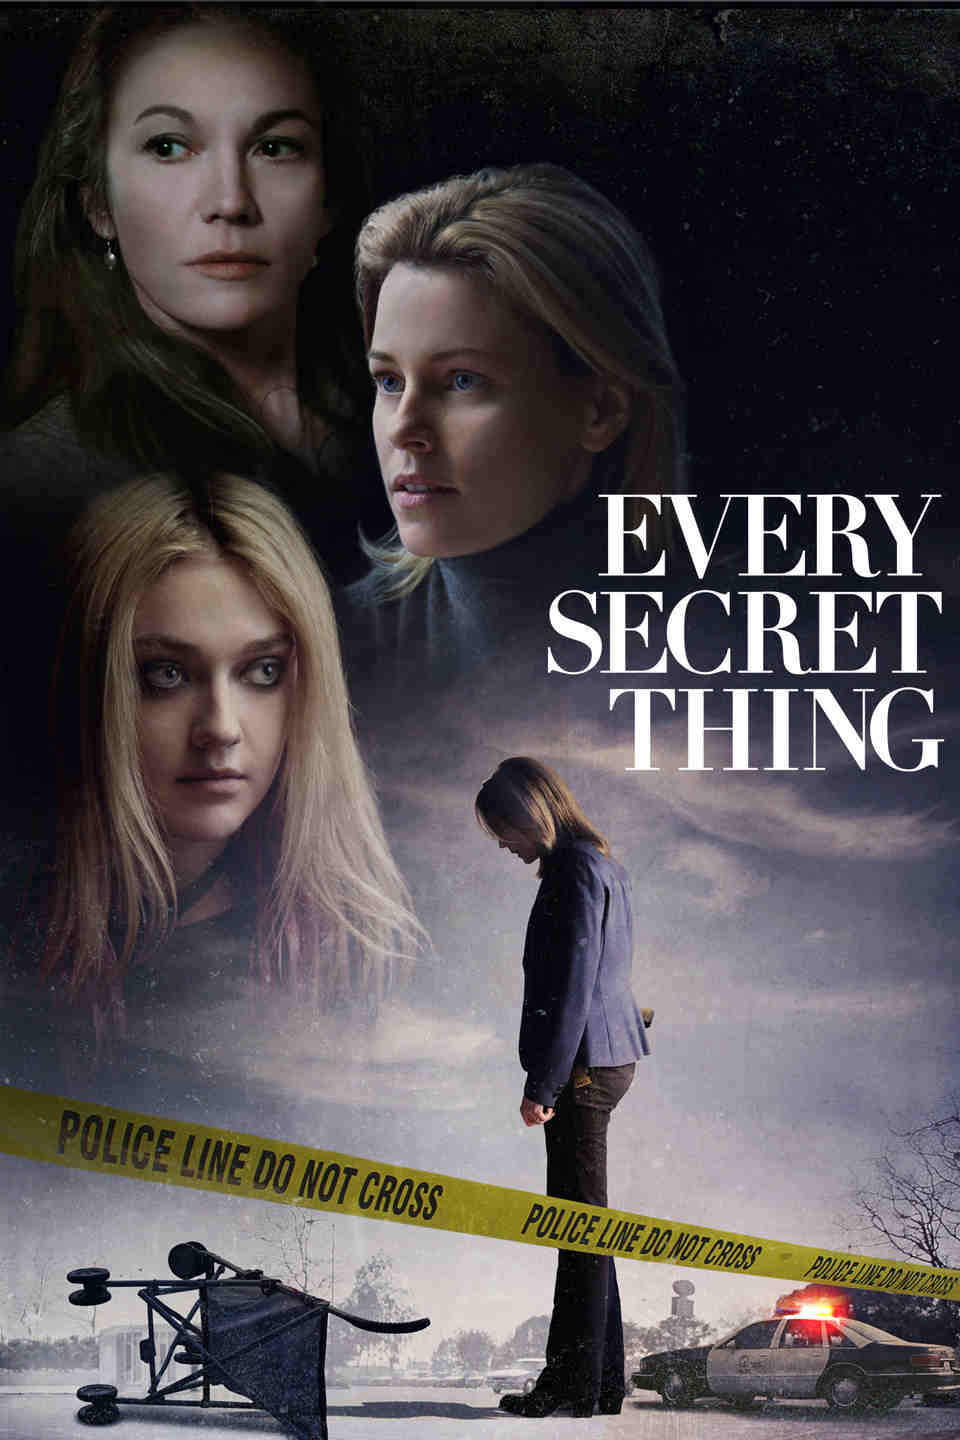 فیلم Every Secret Thing 2014